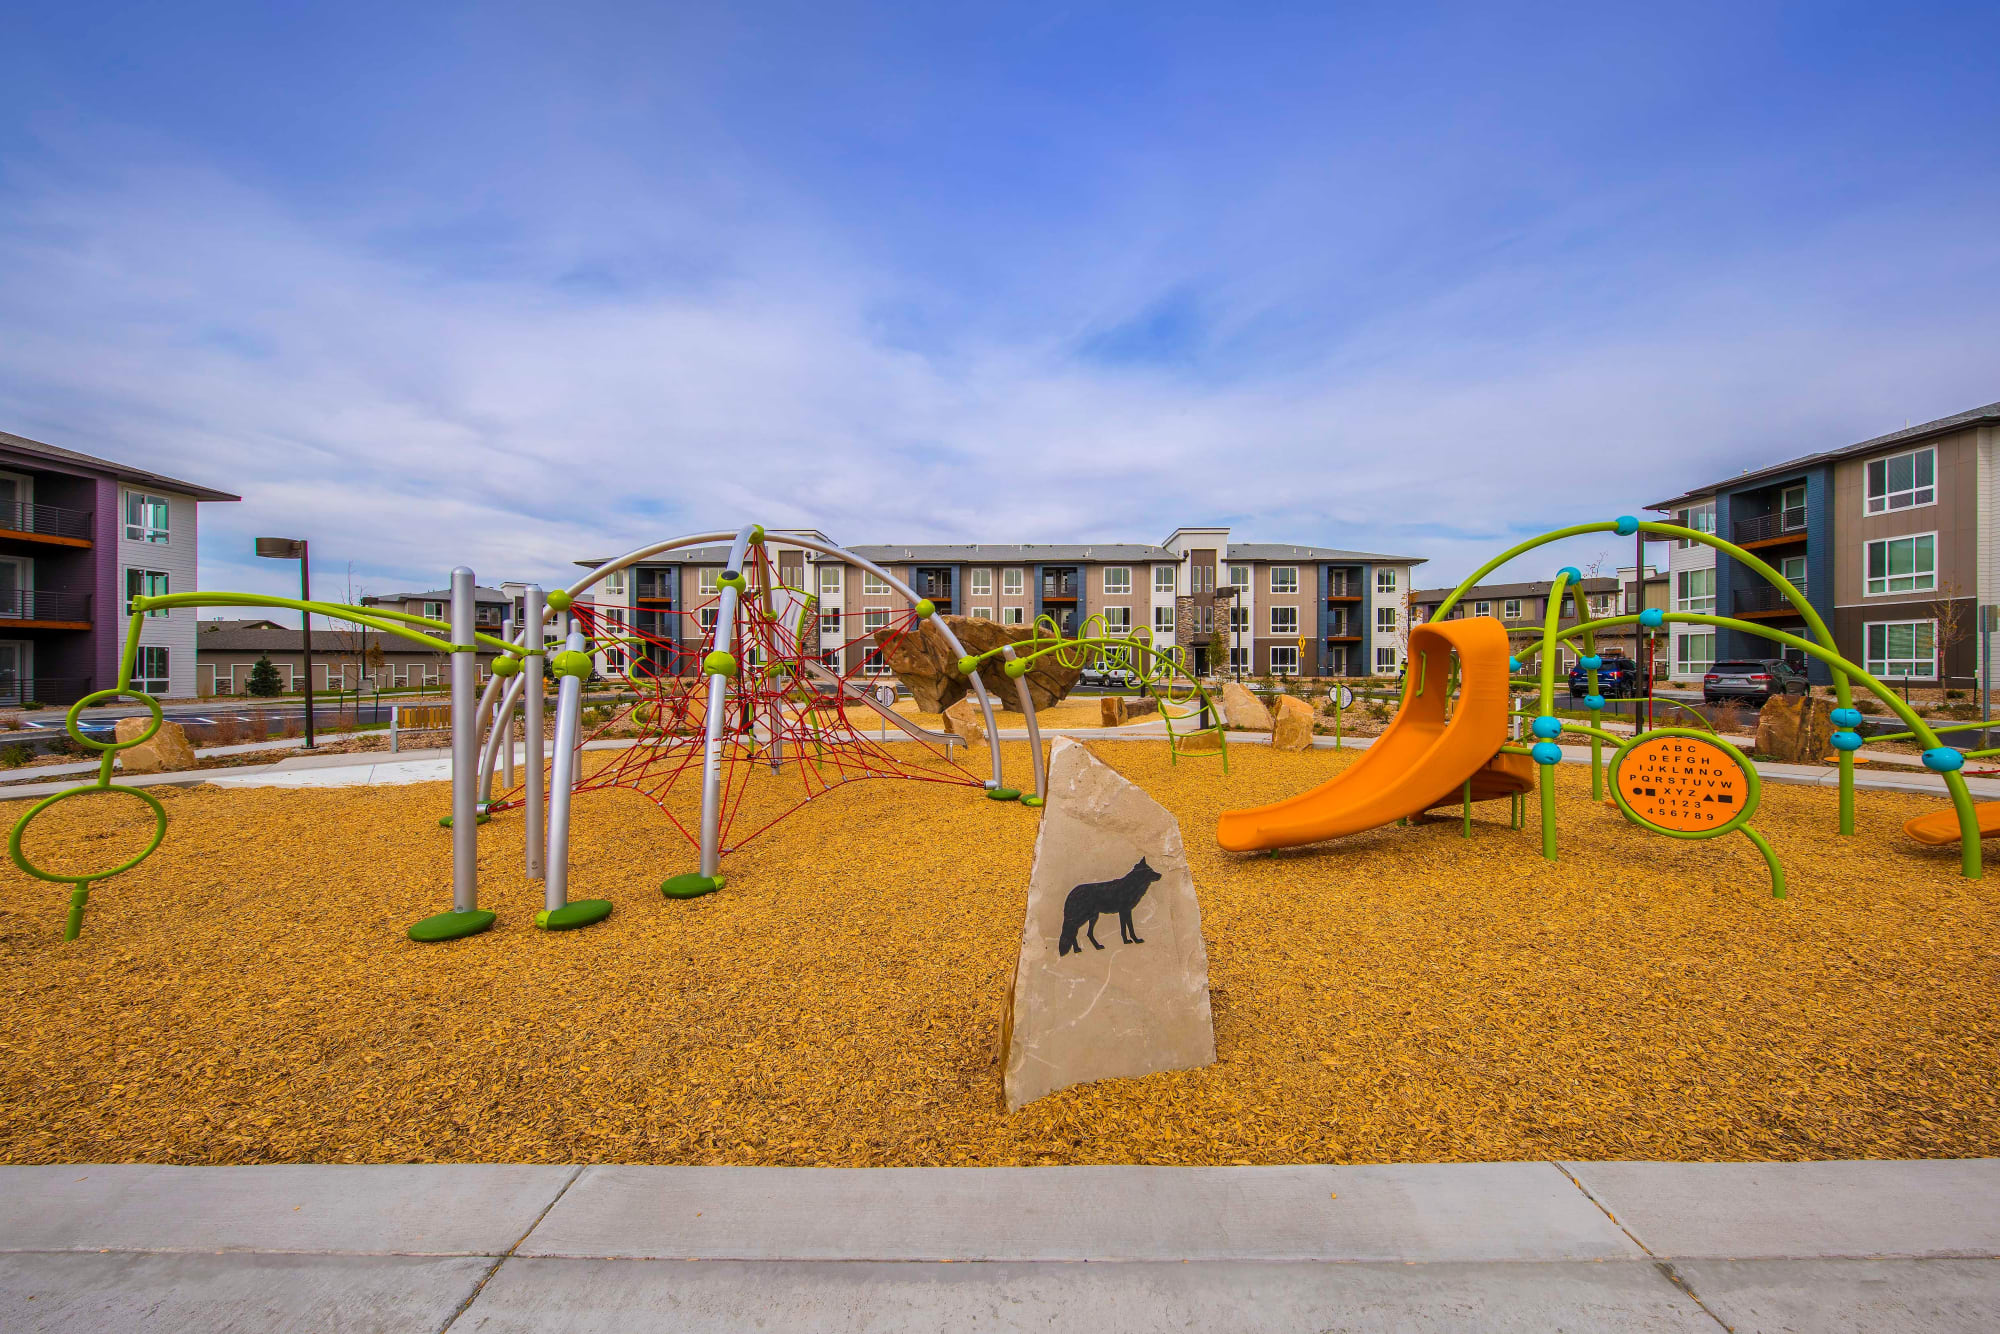 The playground at Strata Apartments in Denver, Colorado